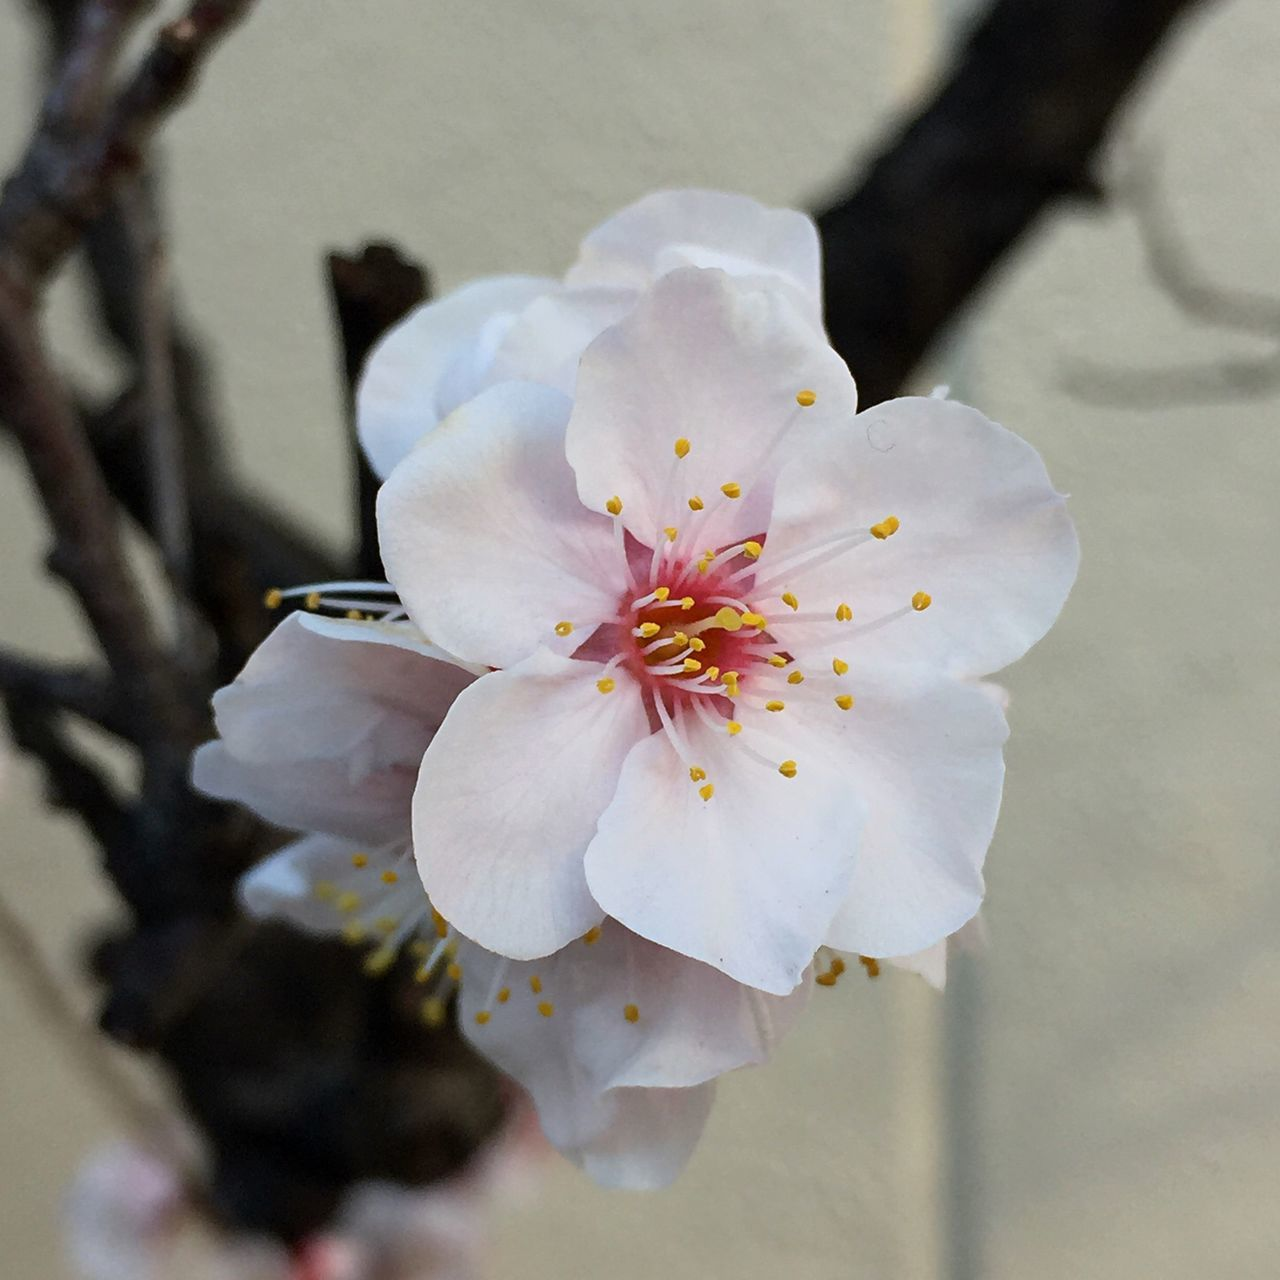 flower, fragility, petal, beauty in nature, blossom, white color, flower head, freshness, nature, growth, springtime, botany, pollen, close-up, apple blossom, stamen, orchard, no people, branch, day, tree, plum blossom, outdoors, blooming